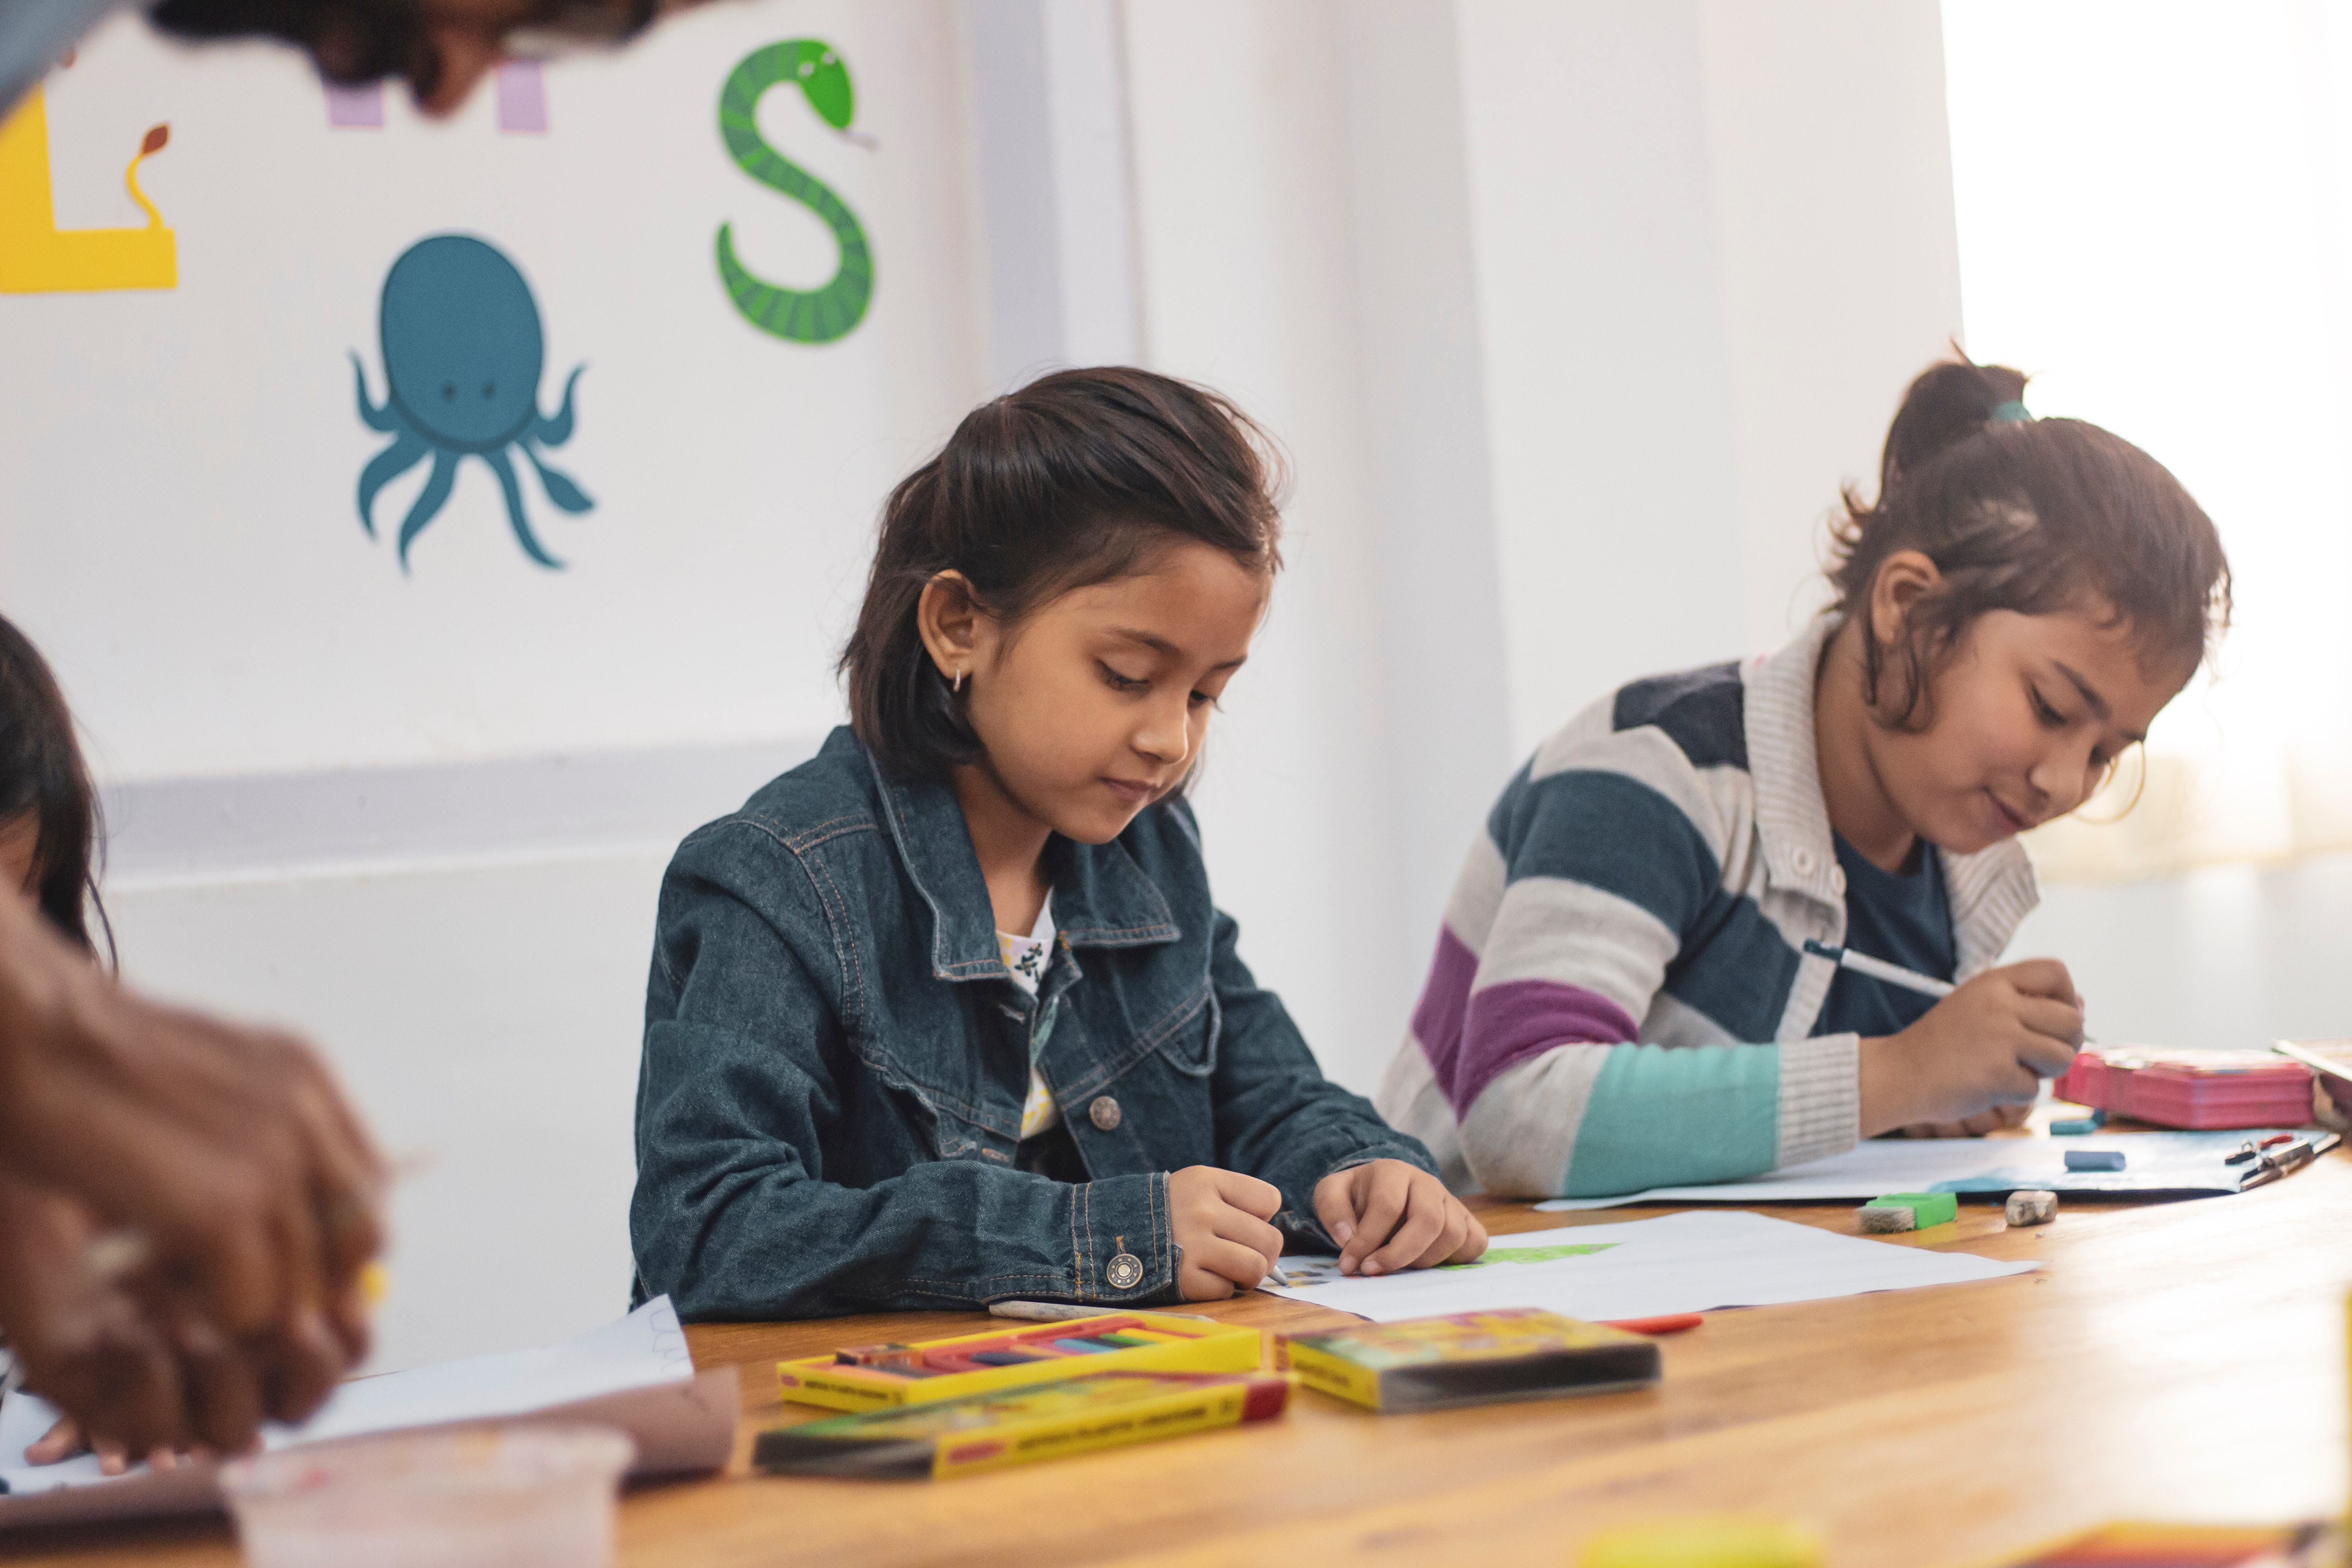 Two girls in school coloring at a table